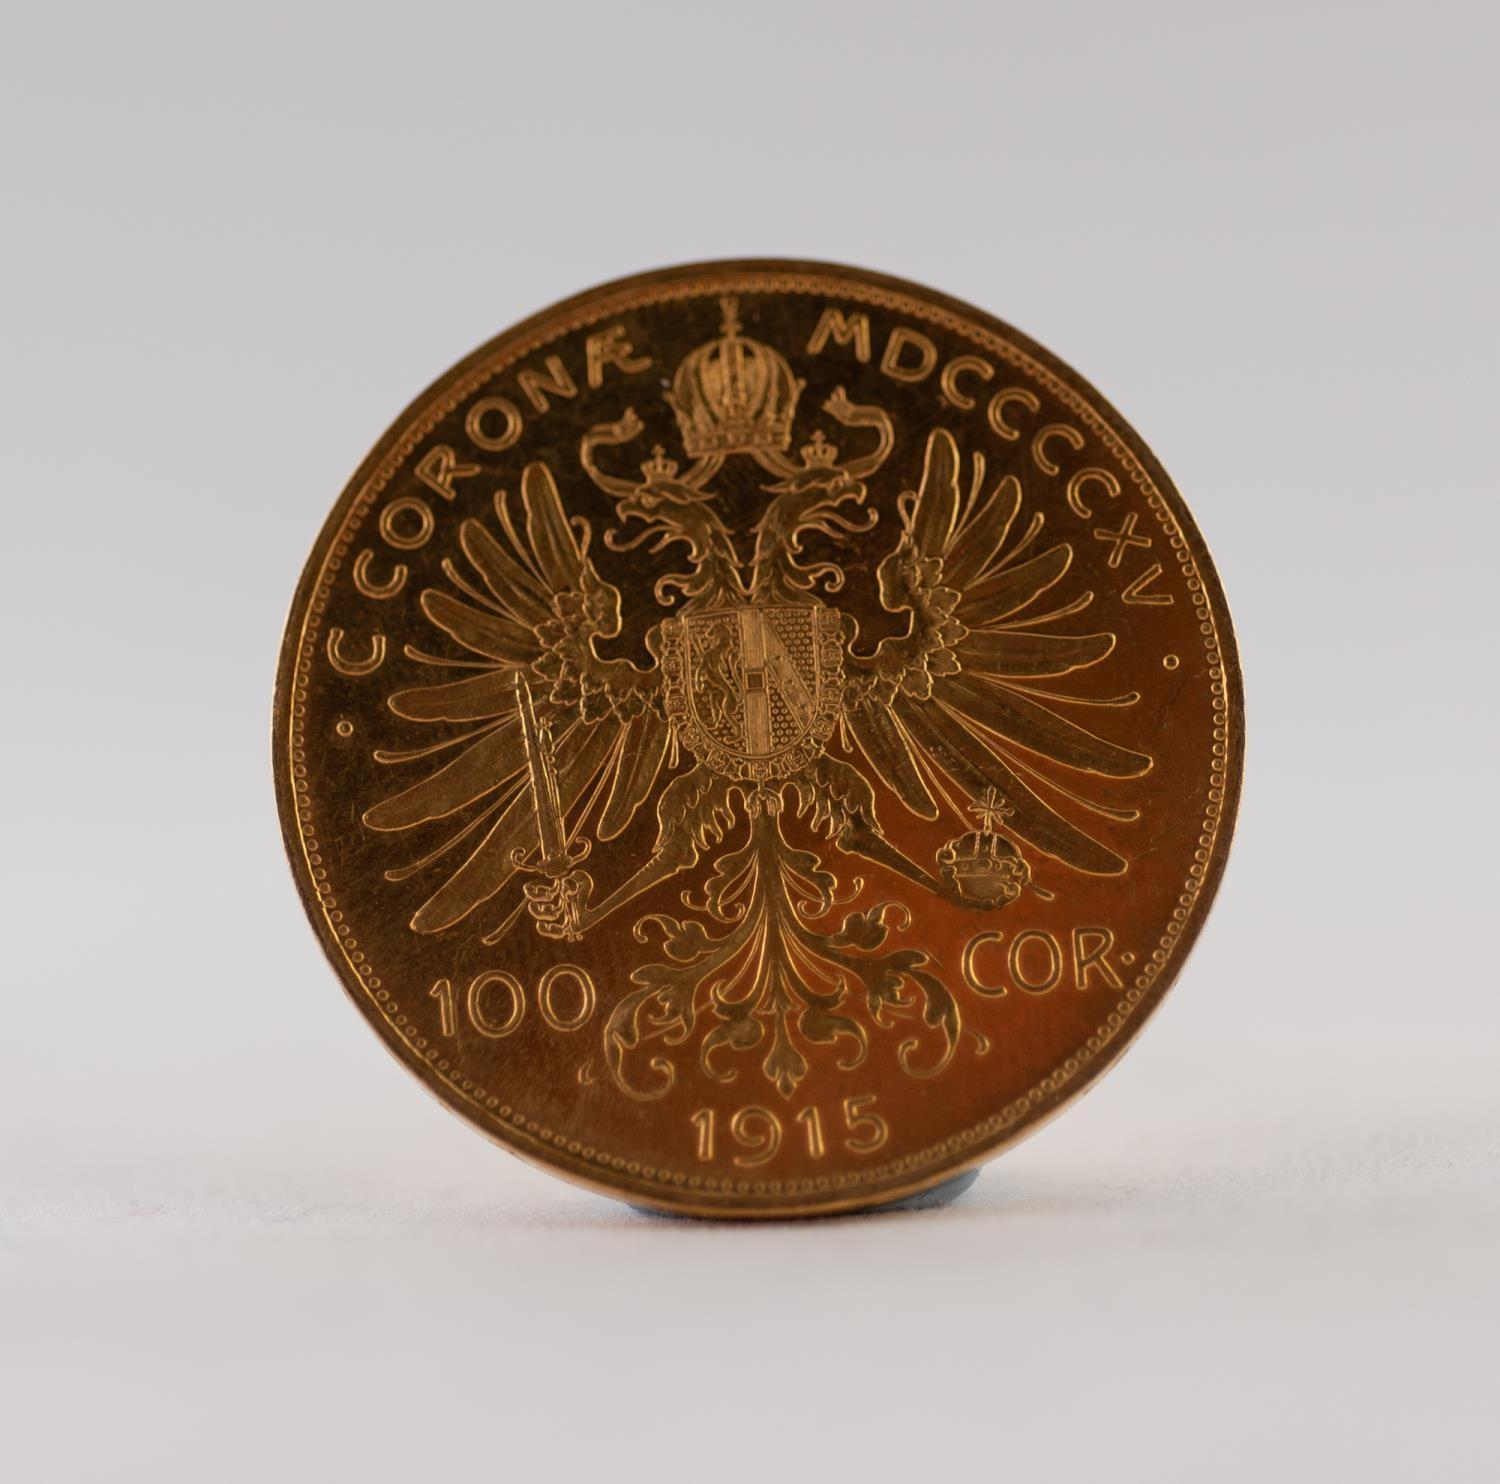 Lot 58 - AUSTRIAN 100 CORONA GOLD COIN, dated 1915, 34gms (re-strike)